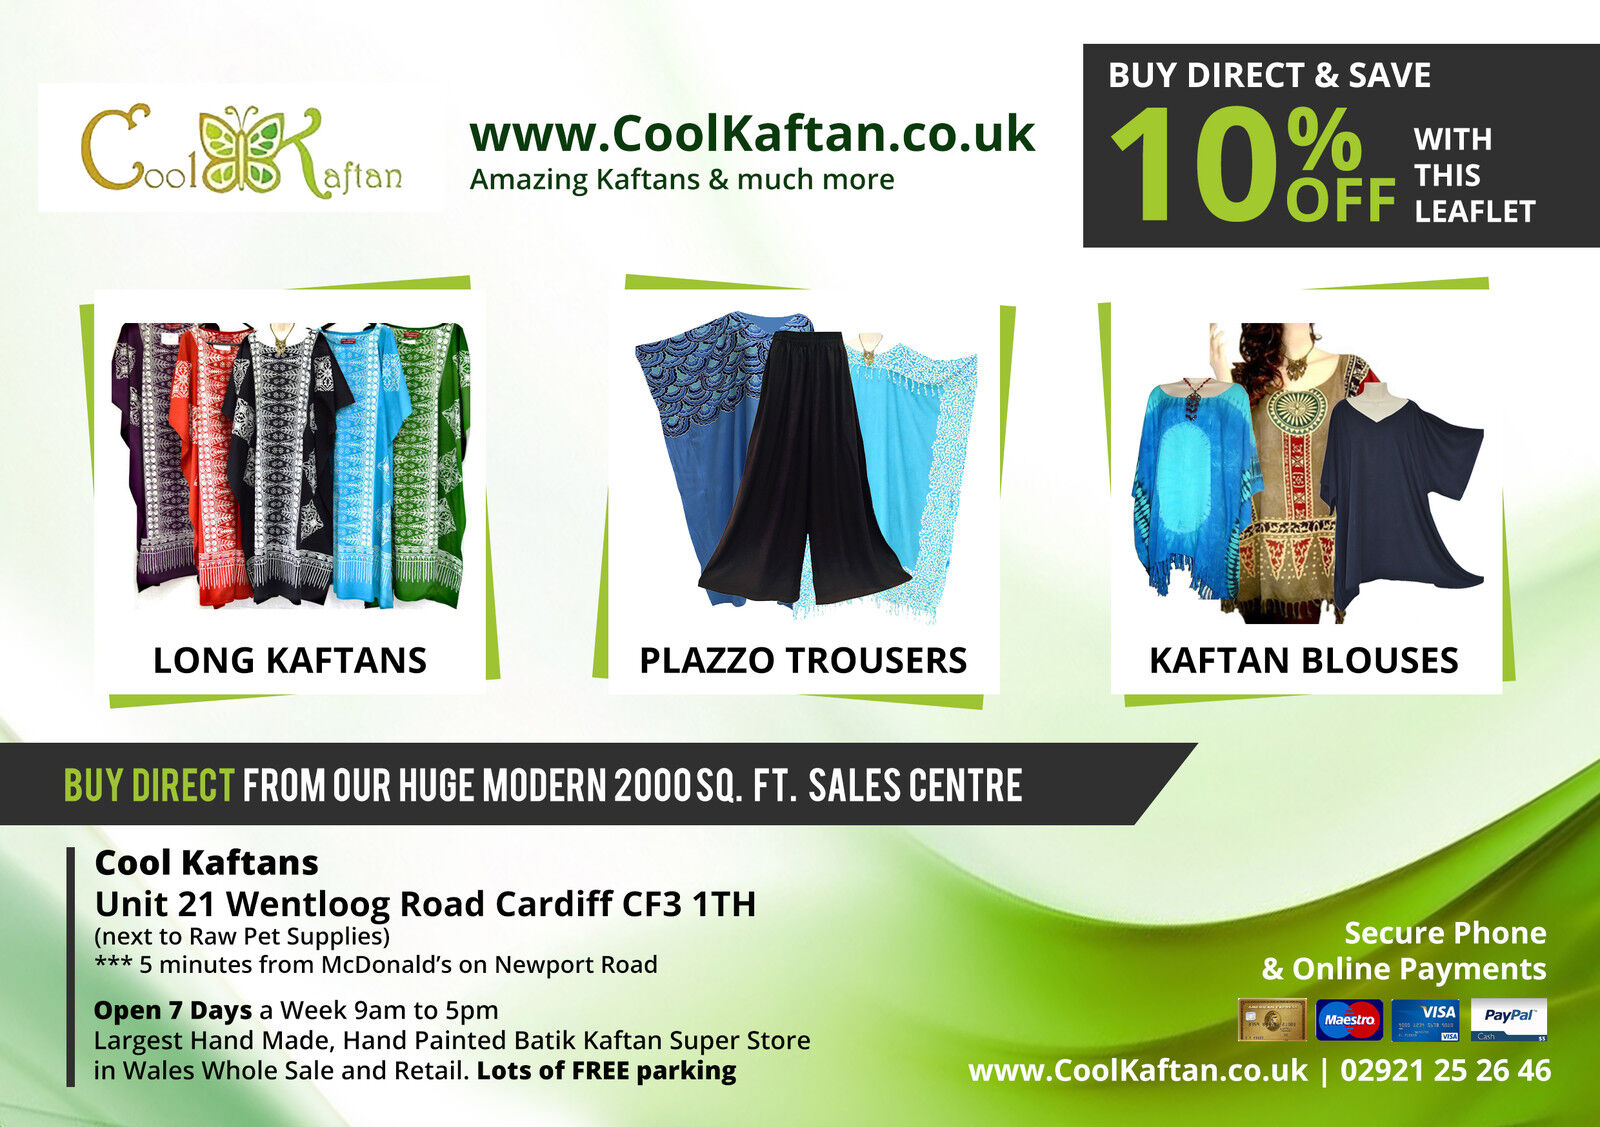 Cool Kaftan Clothes